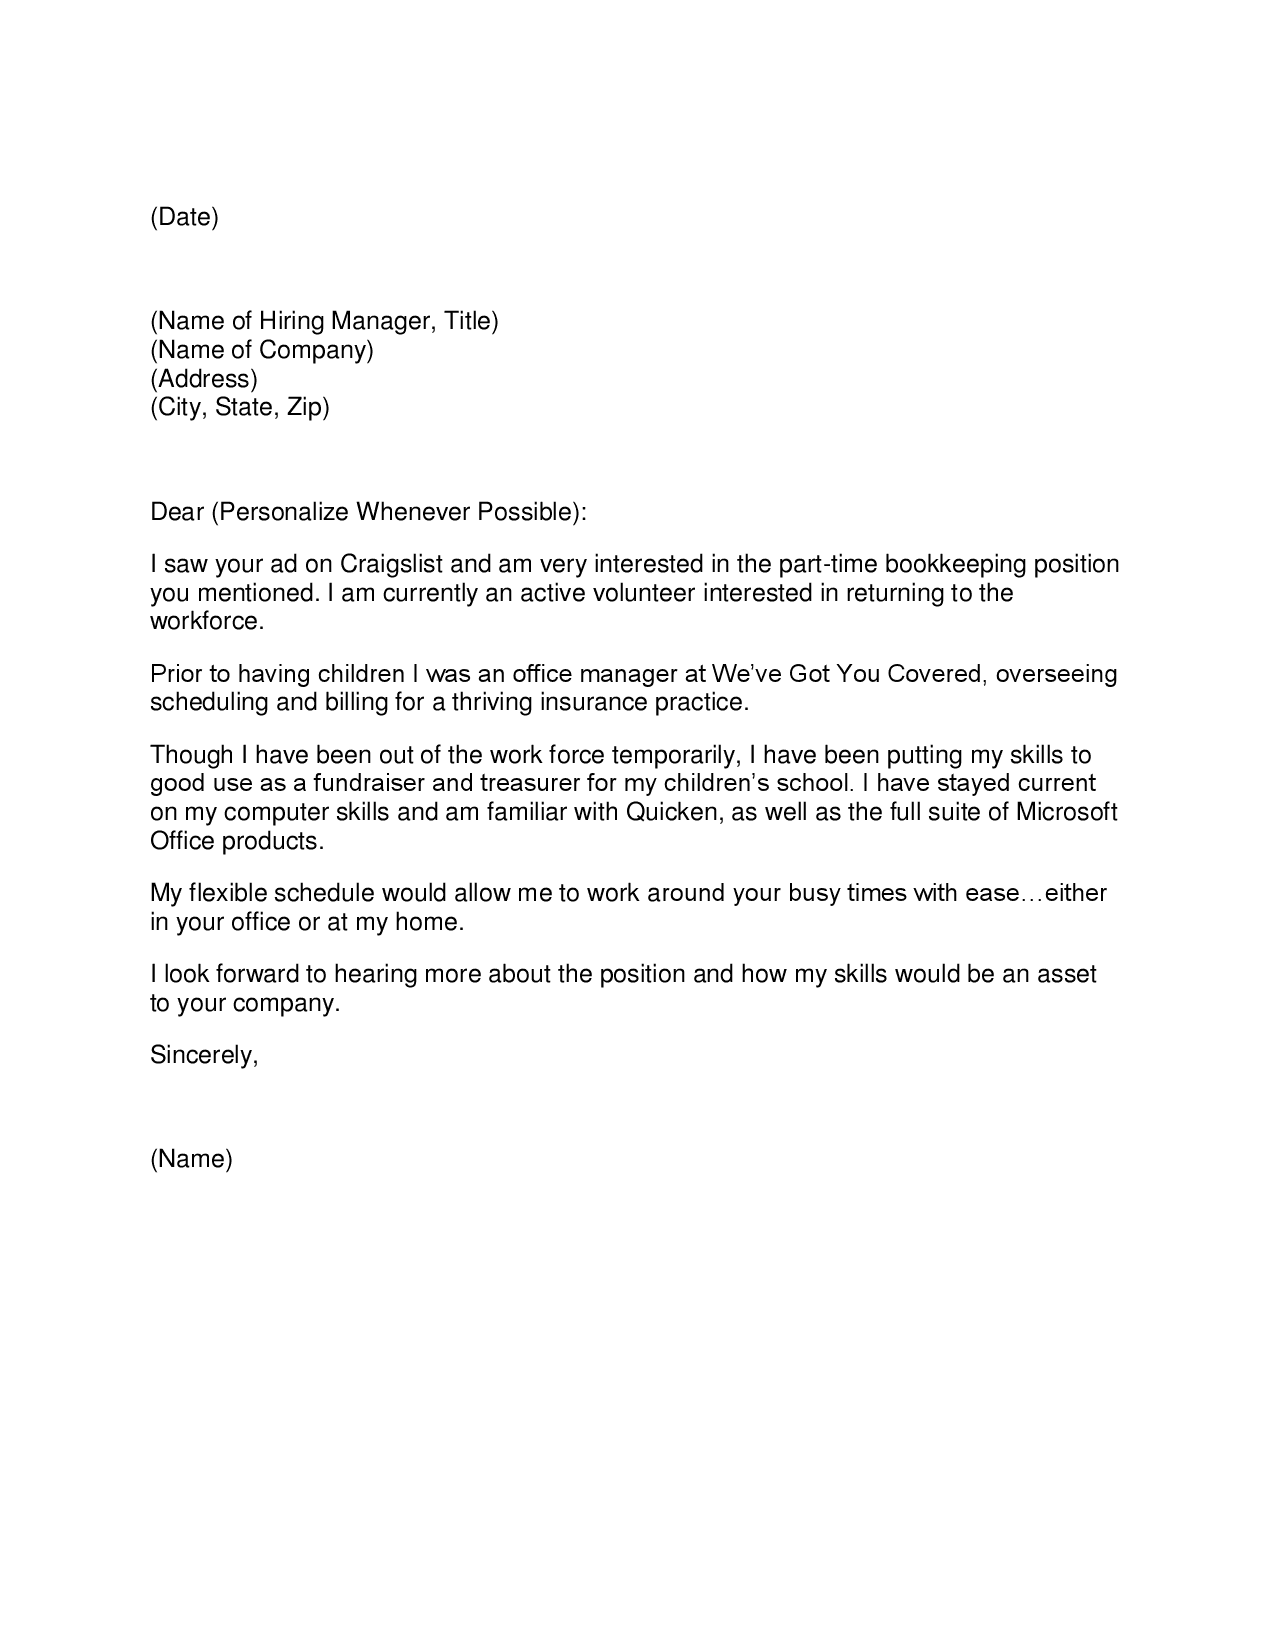 Cover Letter For Job Application Manager] what cover letter ...